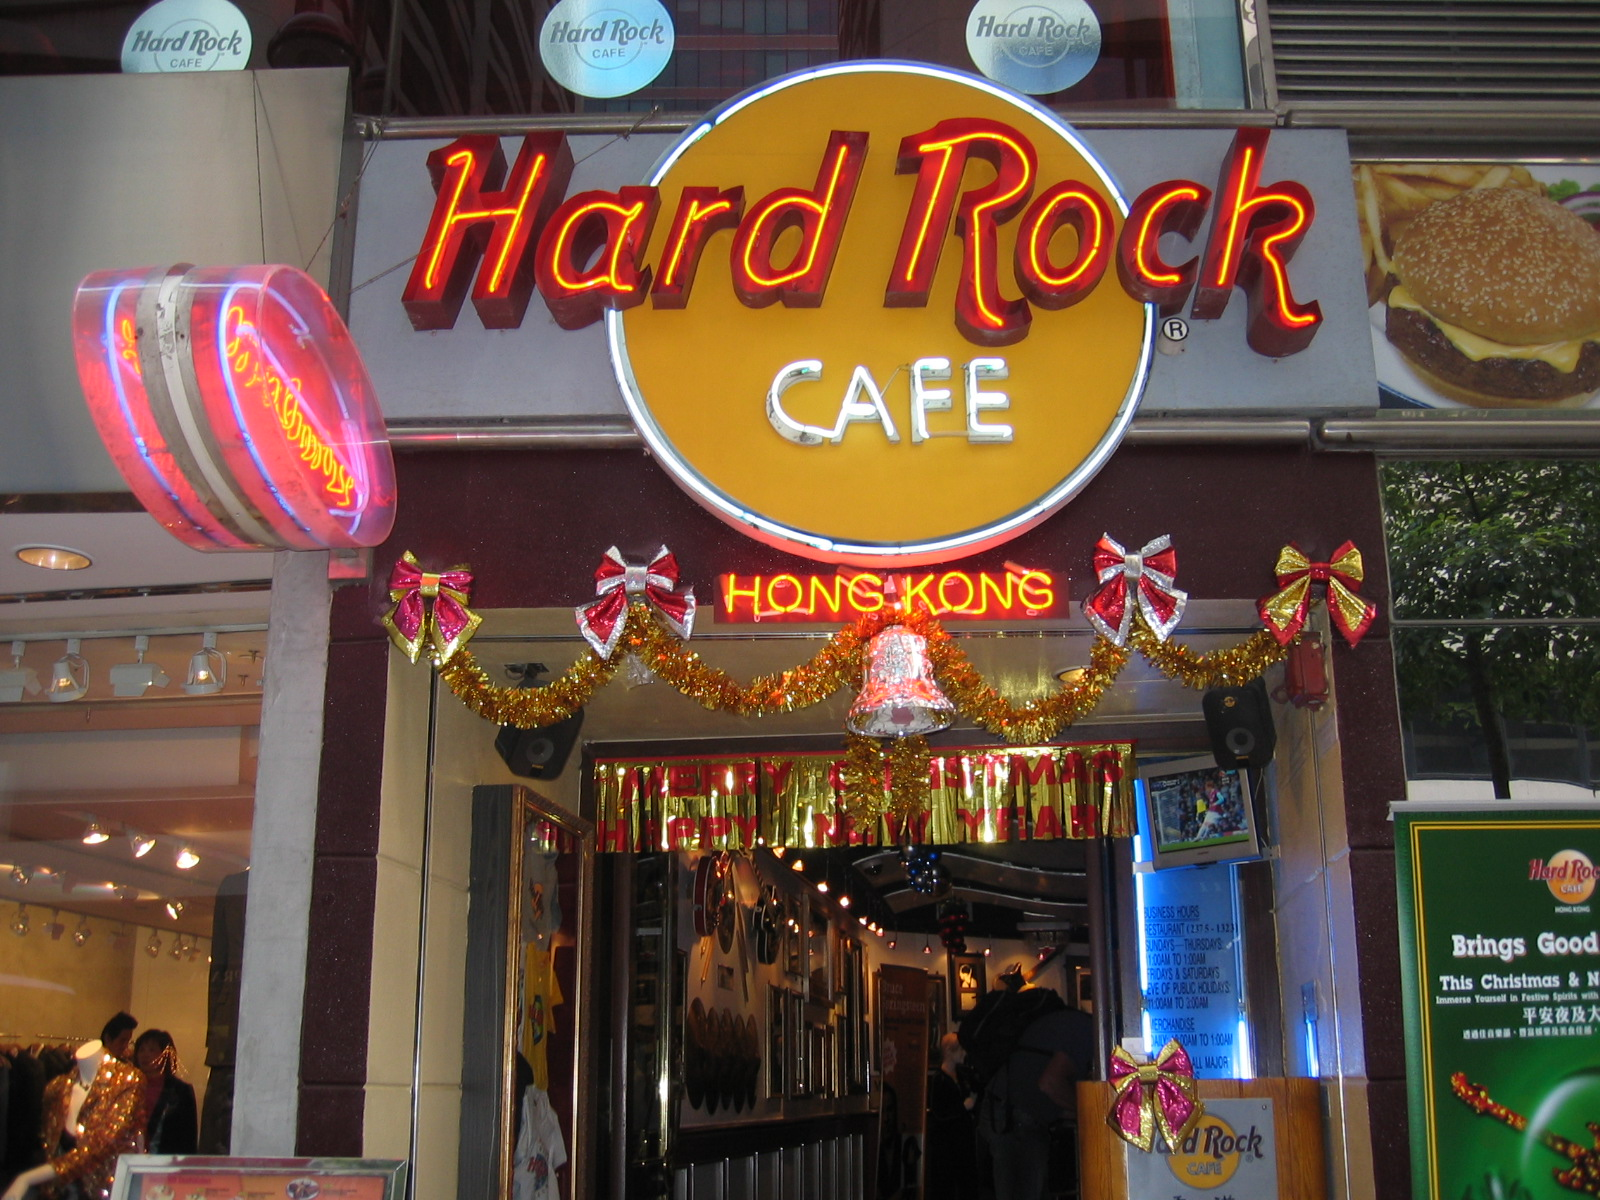 Hard Rock Cafe Wien Happy Hour